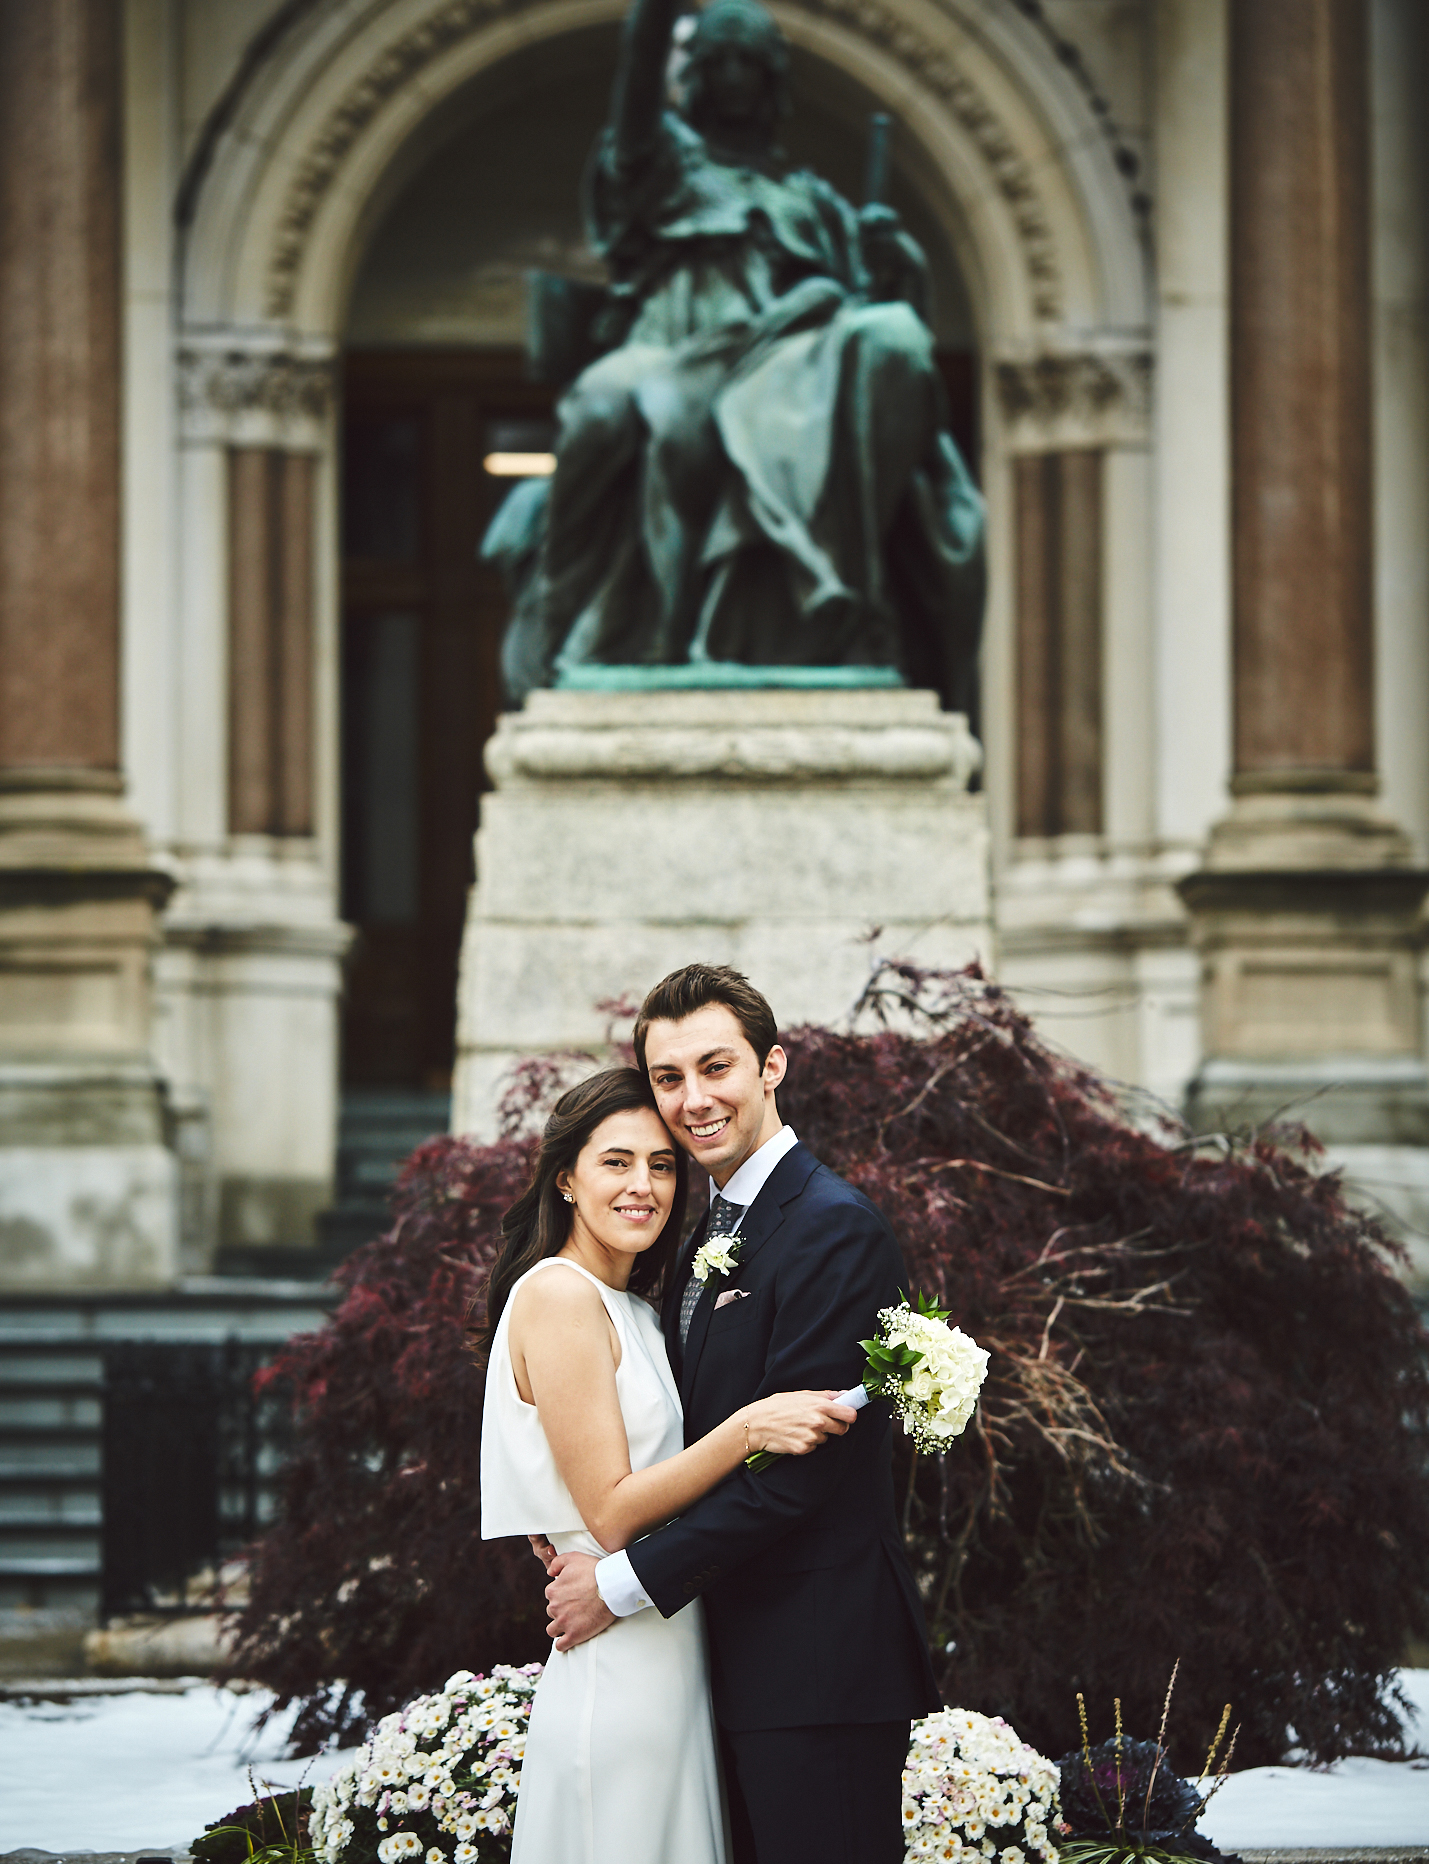 181116_JerseyCityCityHallFallWeddingPhotography_JerseyCityWeddingPhotographer_By_BriJohnsonWeddings_0049.jpg